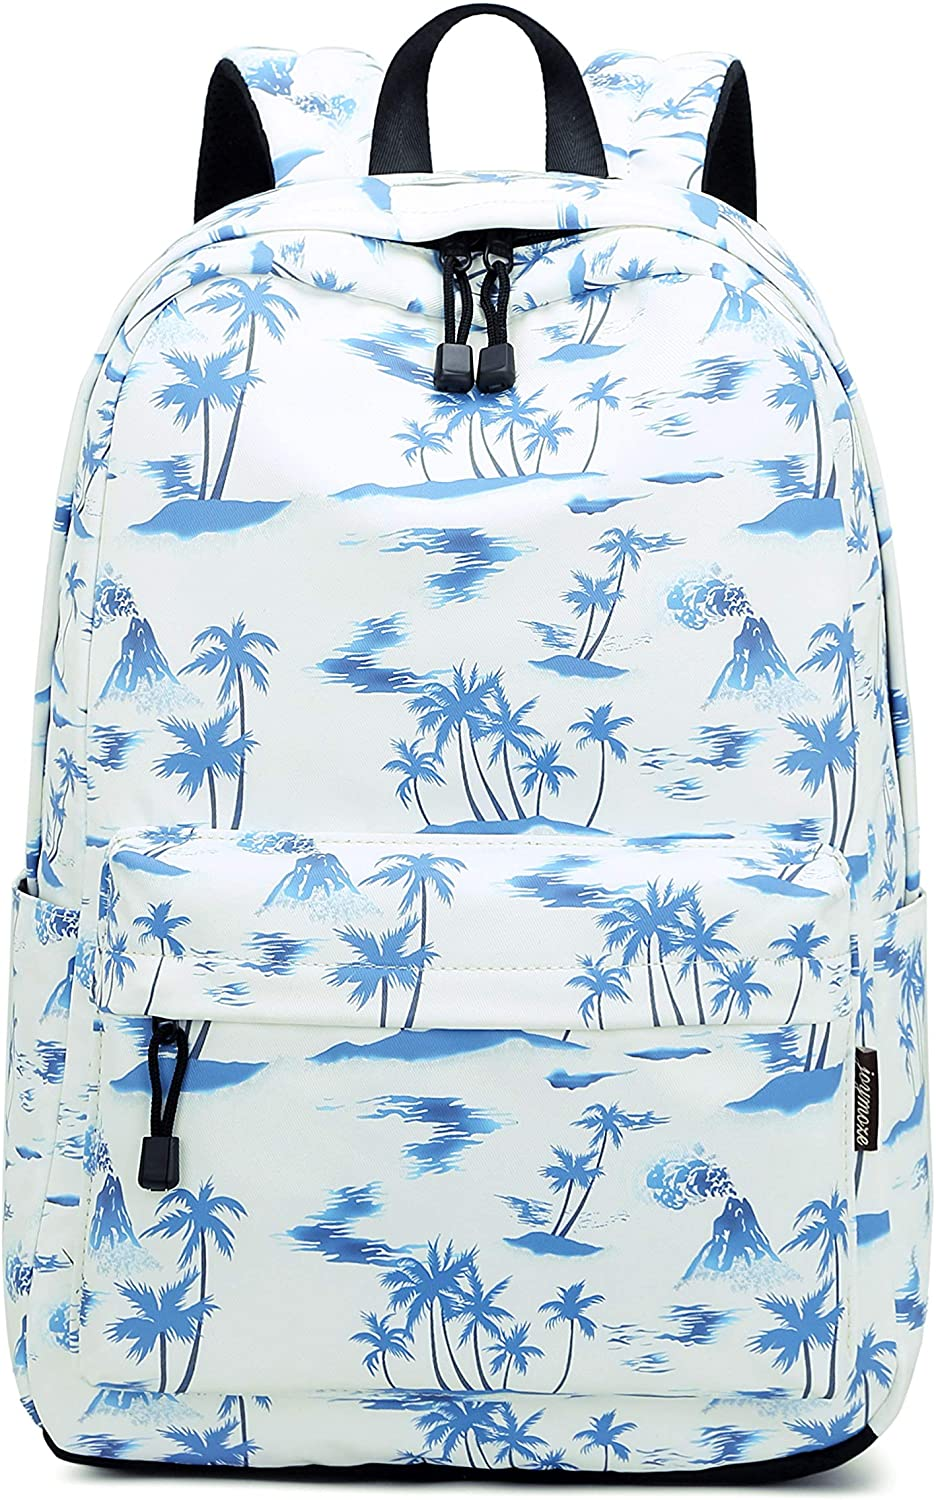 Acmebon Water Resistant Fashion School Backpack for Children Cute Bookbag for Boy and Girl Sea Beach